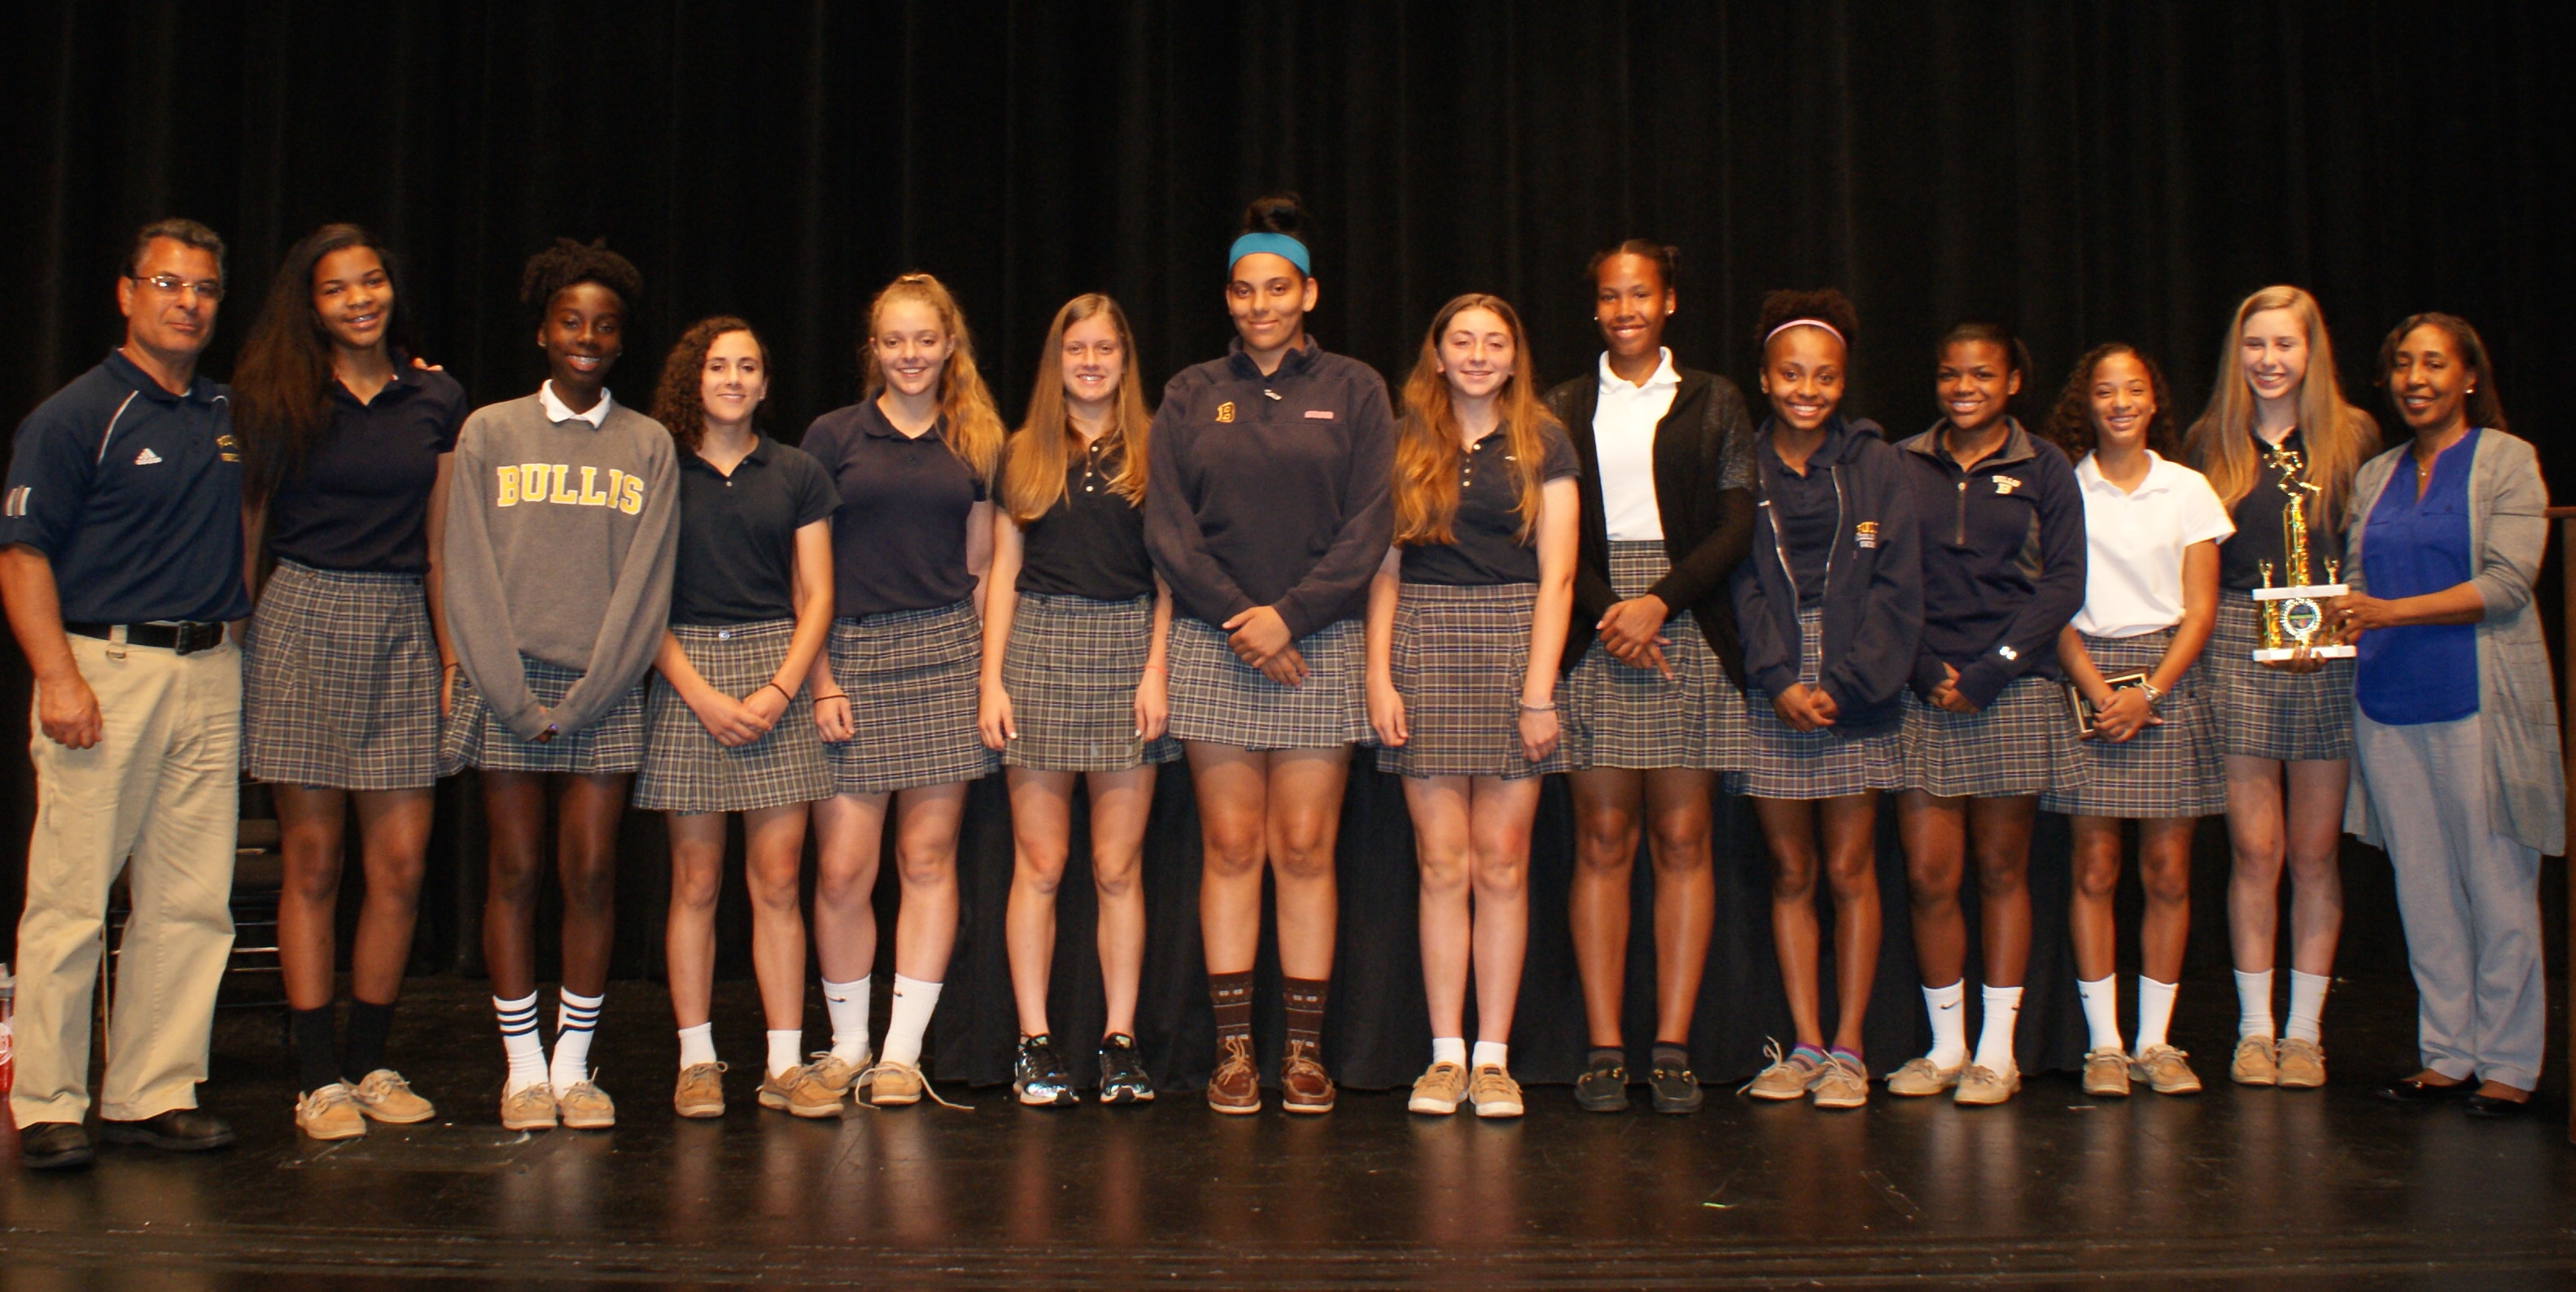 ms students celebrated at spring sports assembly